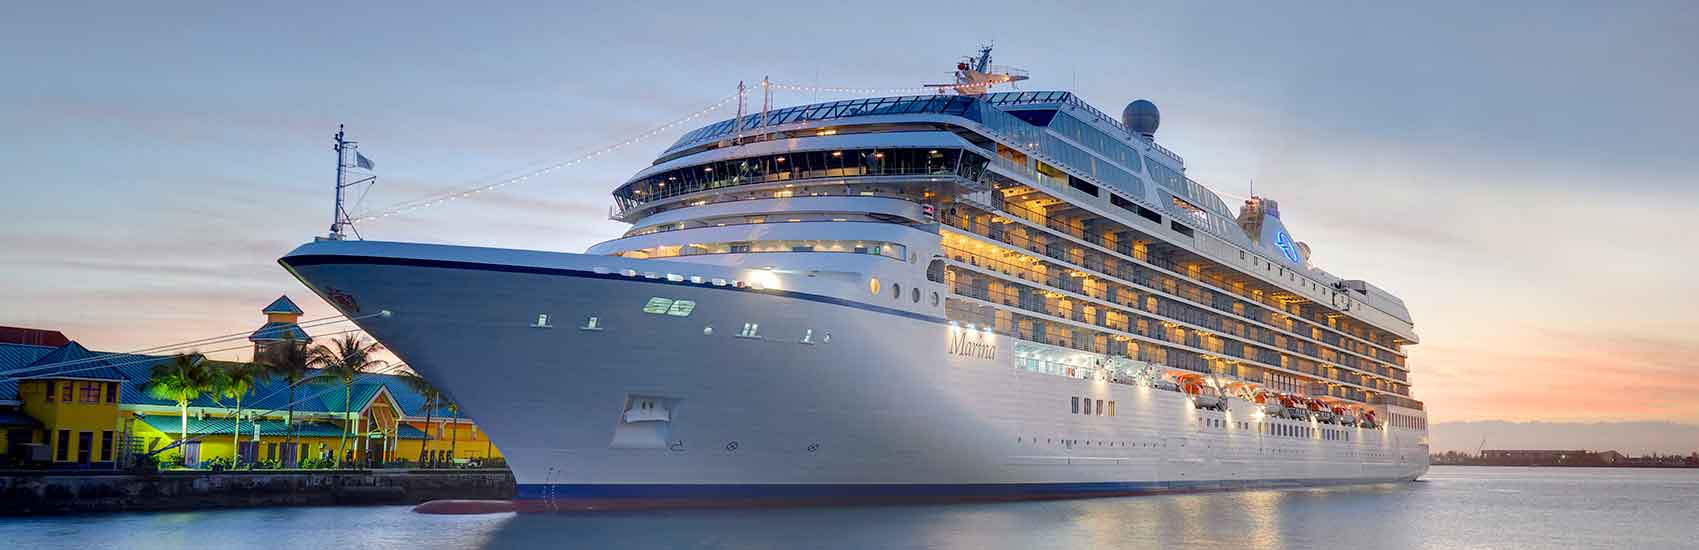 Exclusive Virtuoso Offer with Oceania Cruises